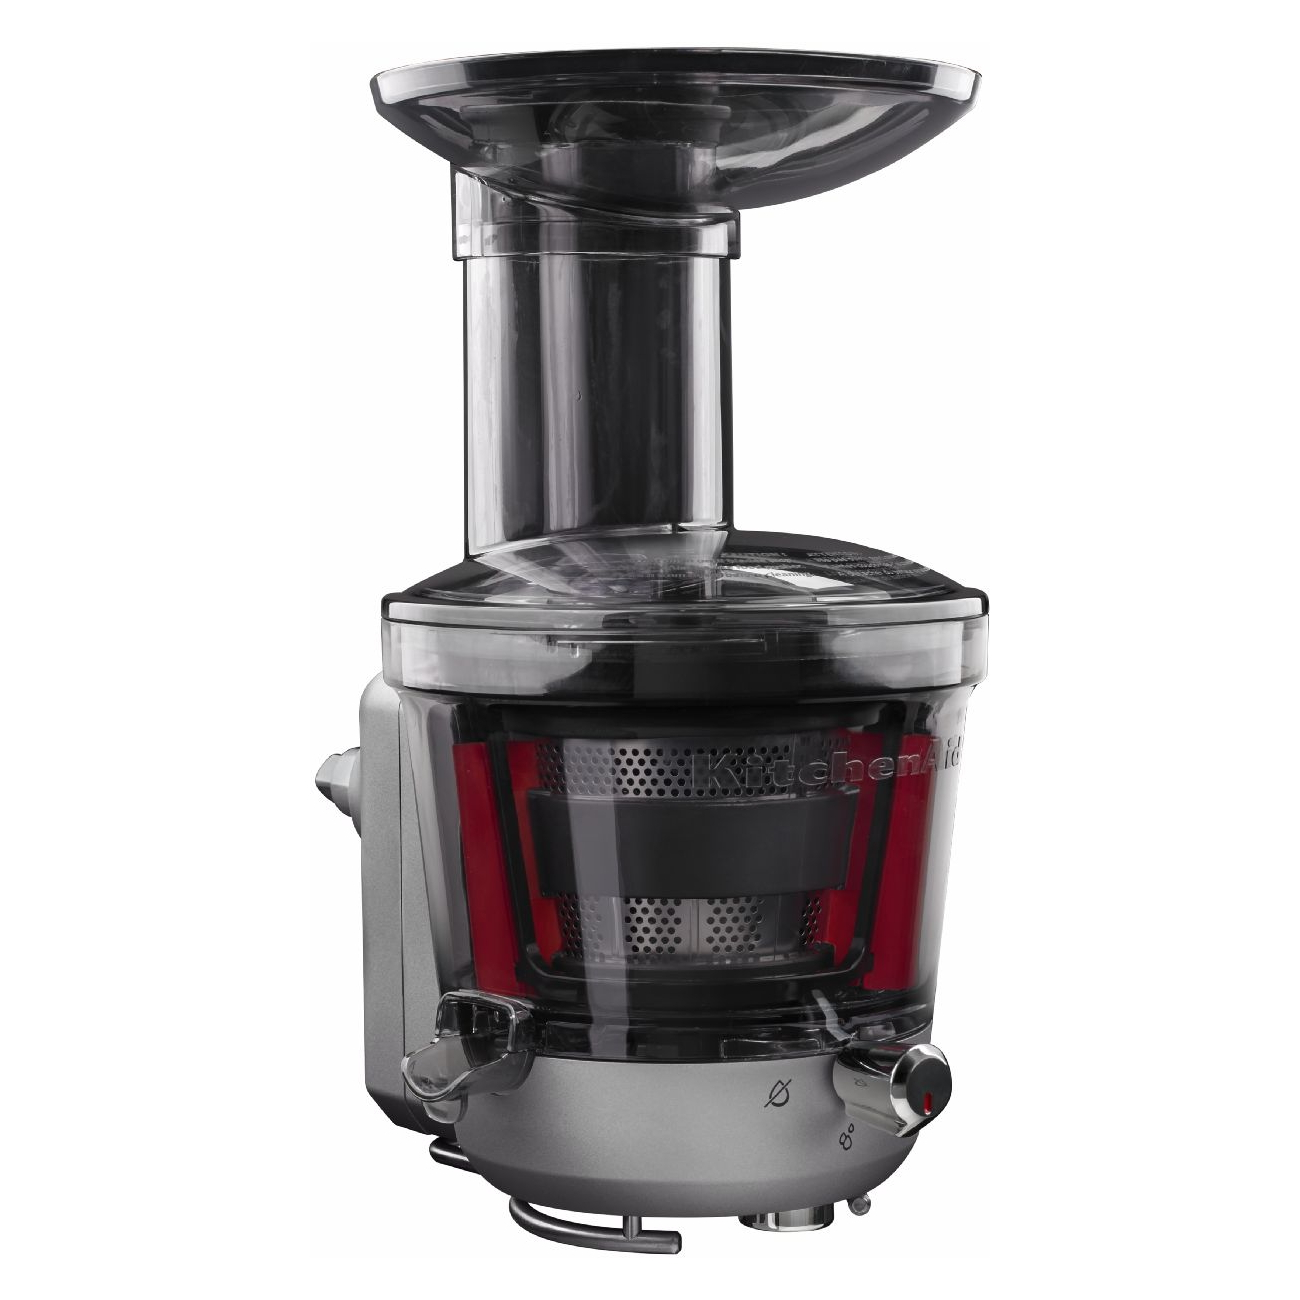 KitchenAid Slow Juicer and Sauce Stand Mixer Attachment